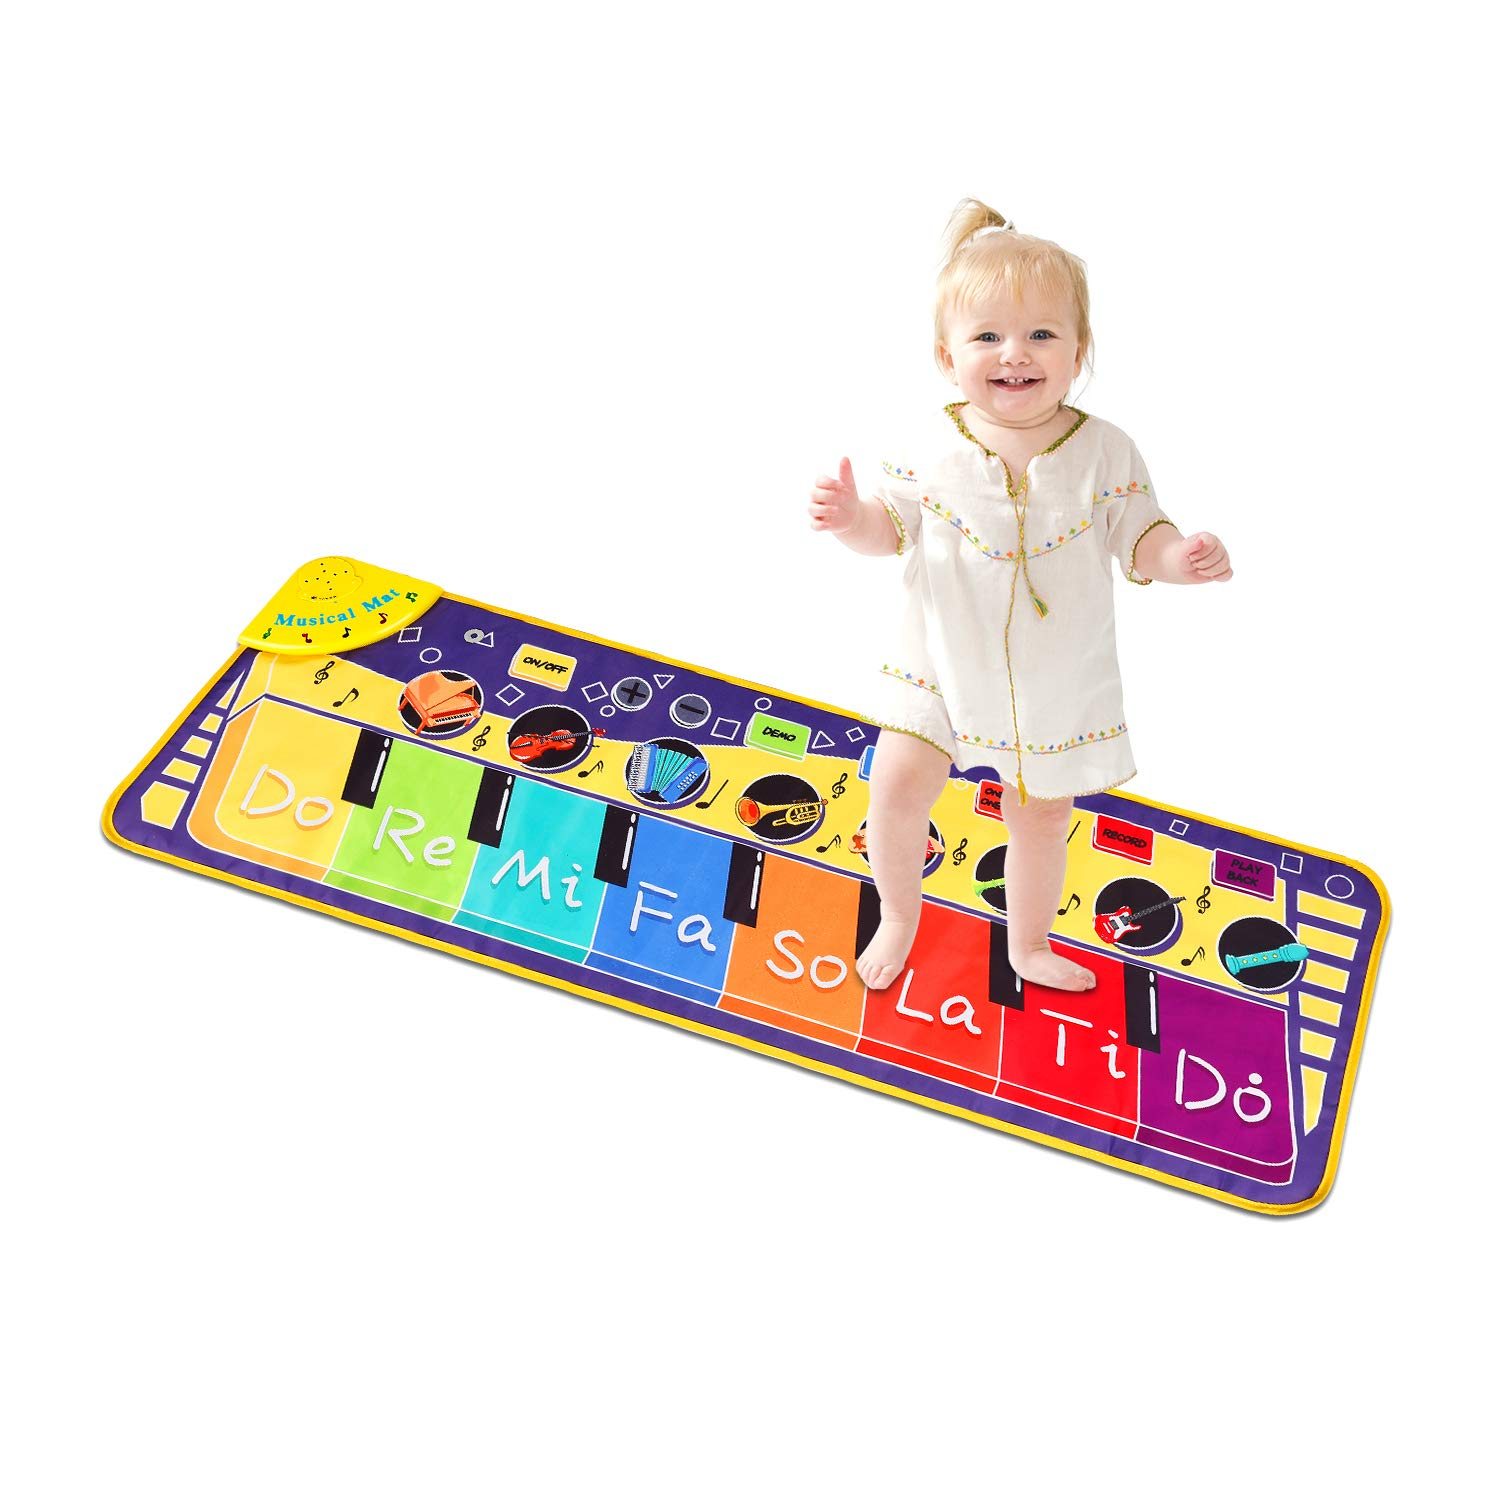 M SANMERSEN Piano Mat for Kids, Keyboard Musical Mat with 8 Demos/ 8 Instrument Sounds/ Record & Playback Function Touch Play Music Mat Toy Gifts for Boys Girls